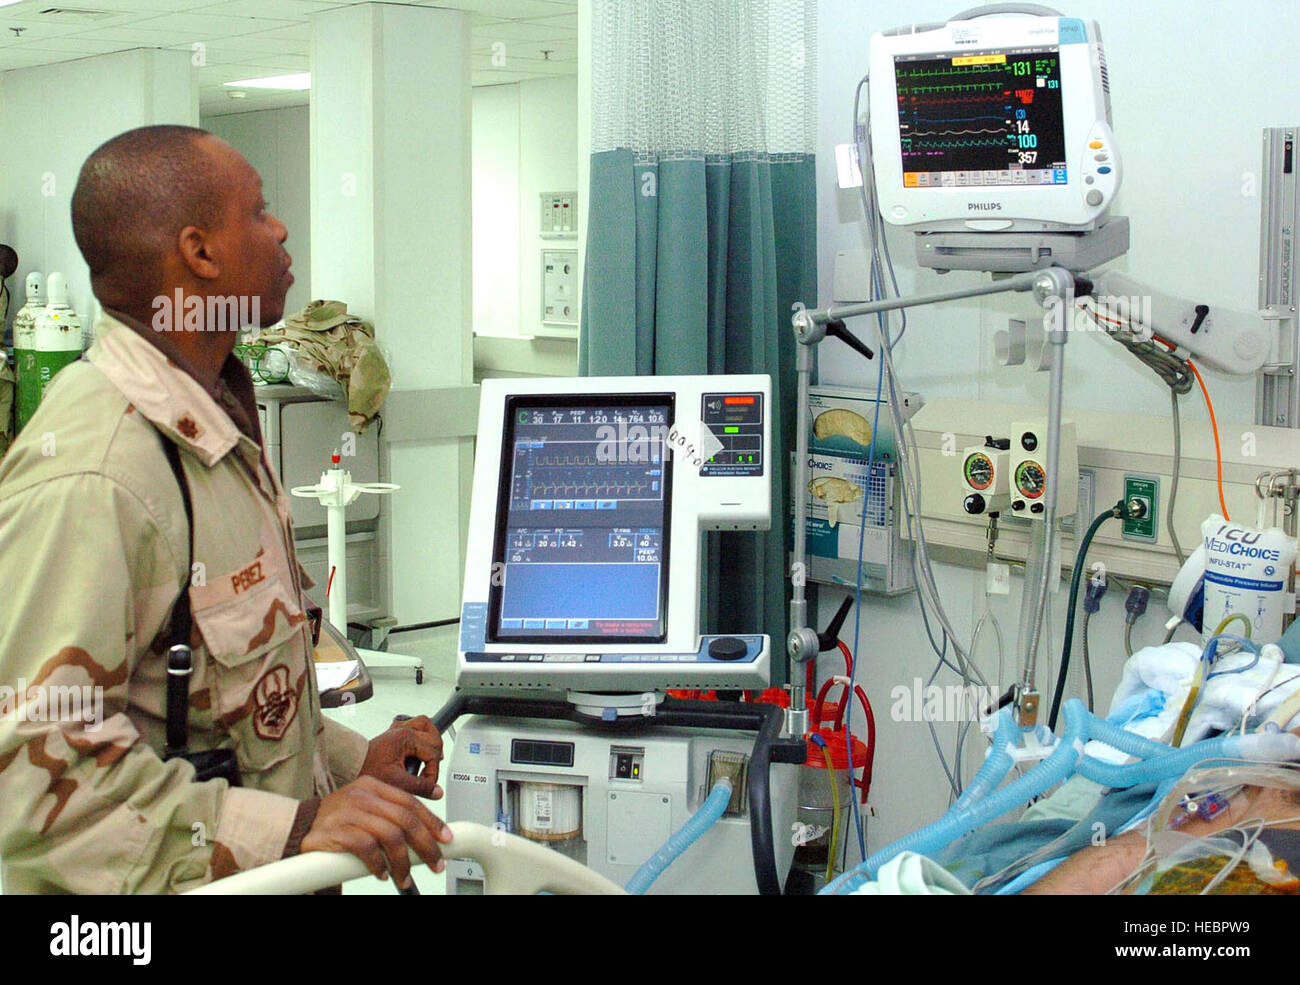 BAGRAM AIRFIELD, Afghanistan - Maj. (Dr.) Clifford Perez, Task Force Med general surgeon, uses the state of the - Stock Image